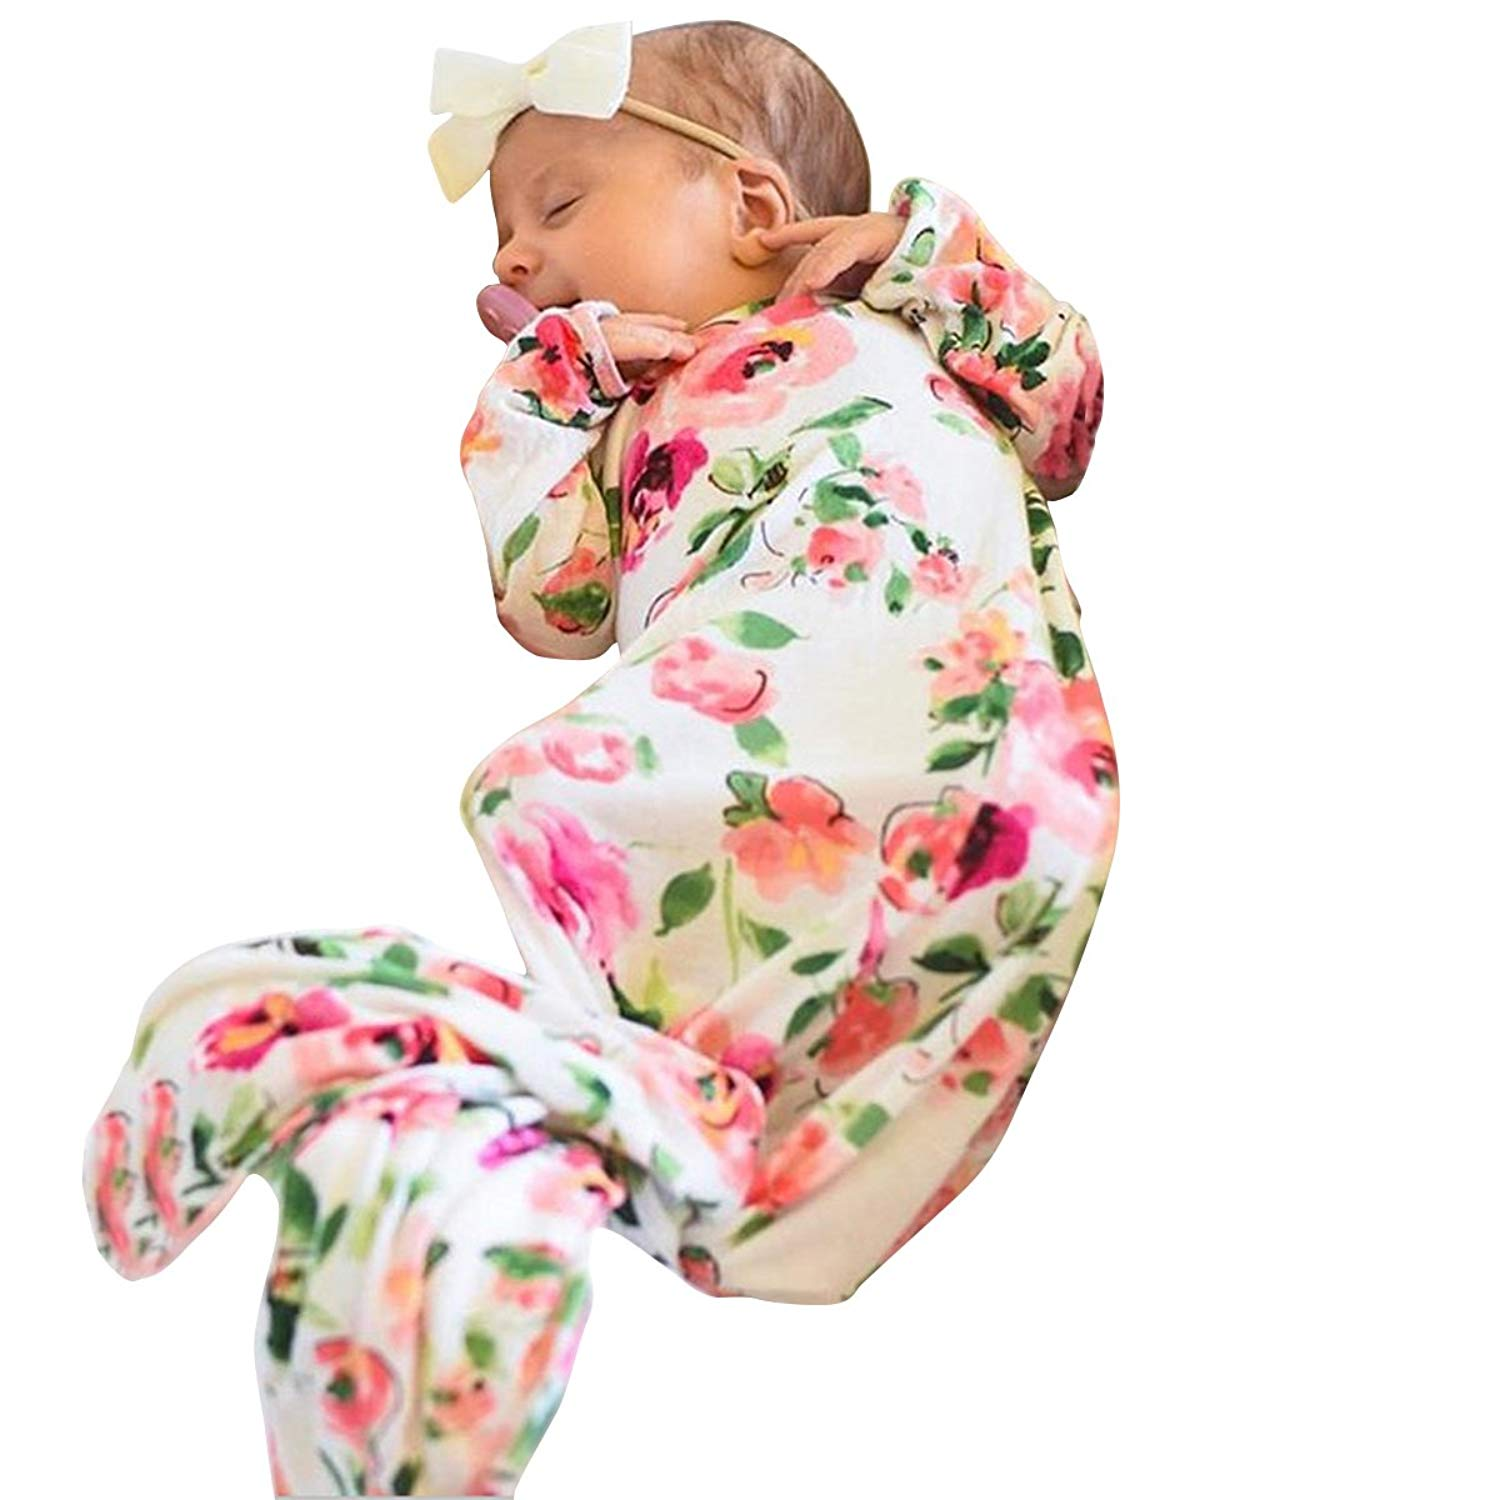 Cheap Sleep Gown Baby, find Sleep Gown Baby deals on line at Alibaba.com